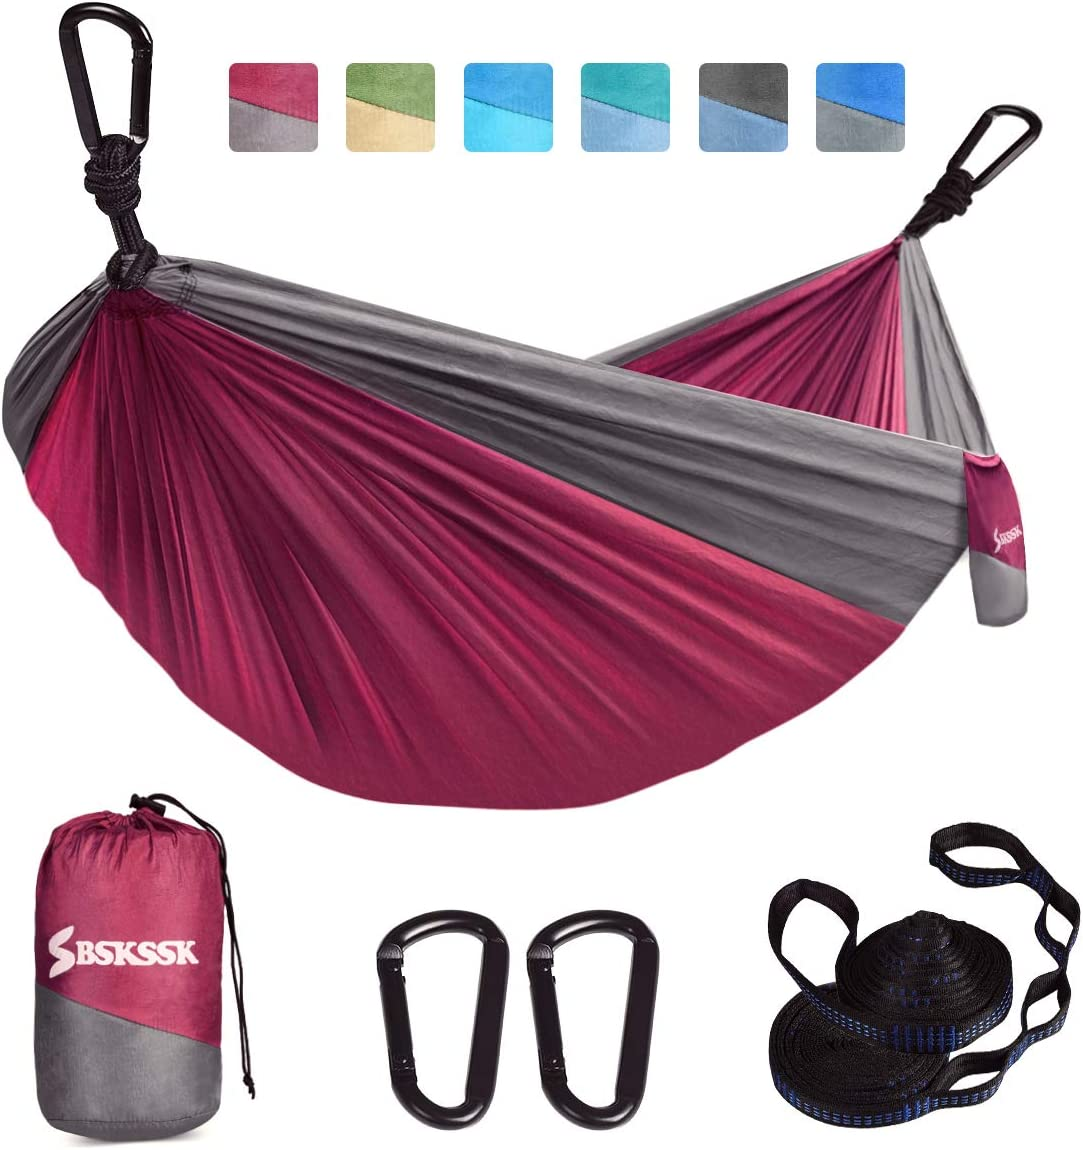 WOVUU Hammock,Camping Hammock Double Single for Tree, Travel Portable Lightweight Hammock with Tree Straps,Carabiners,Parachute Nylon Hammocks for Camping,Traveling Backpacking,Hiking Grey Red